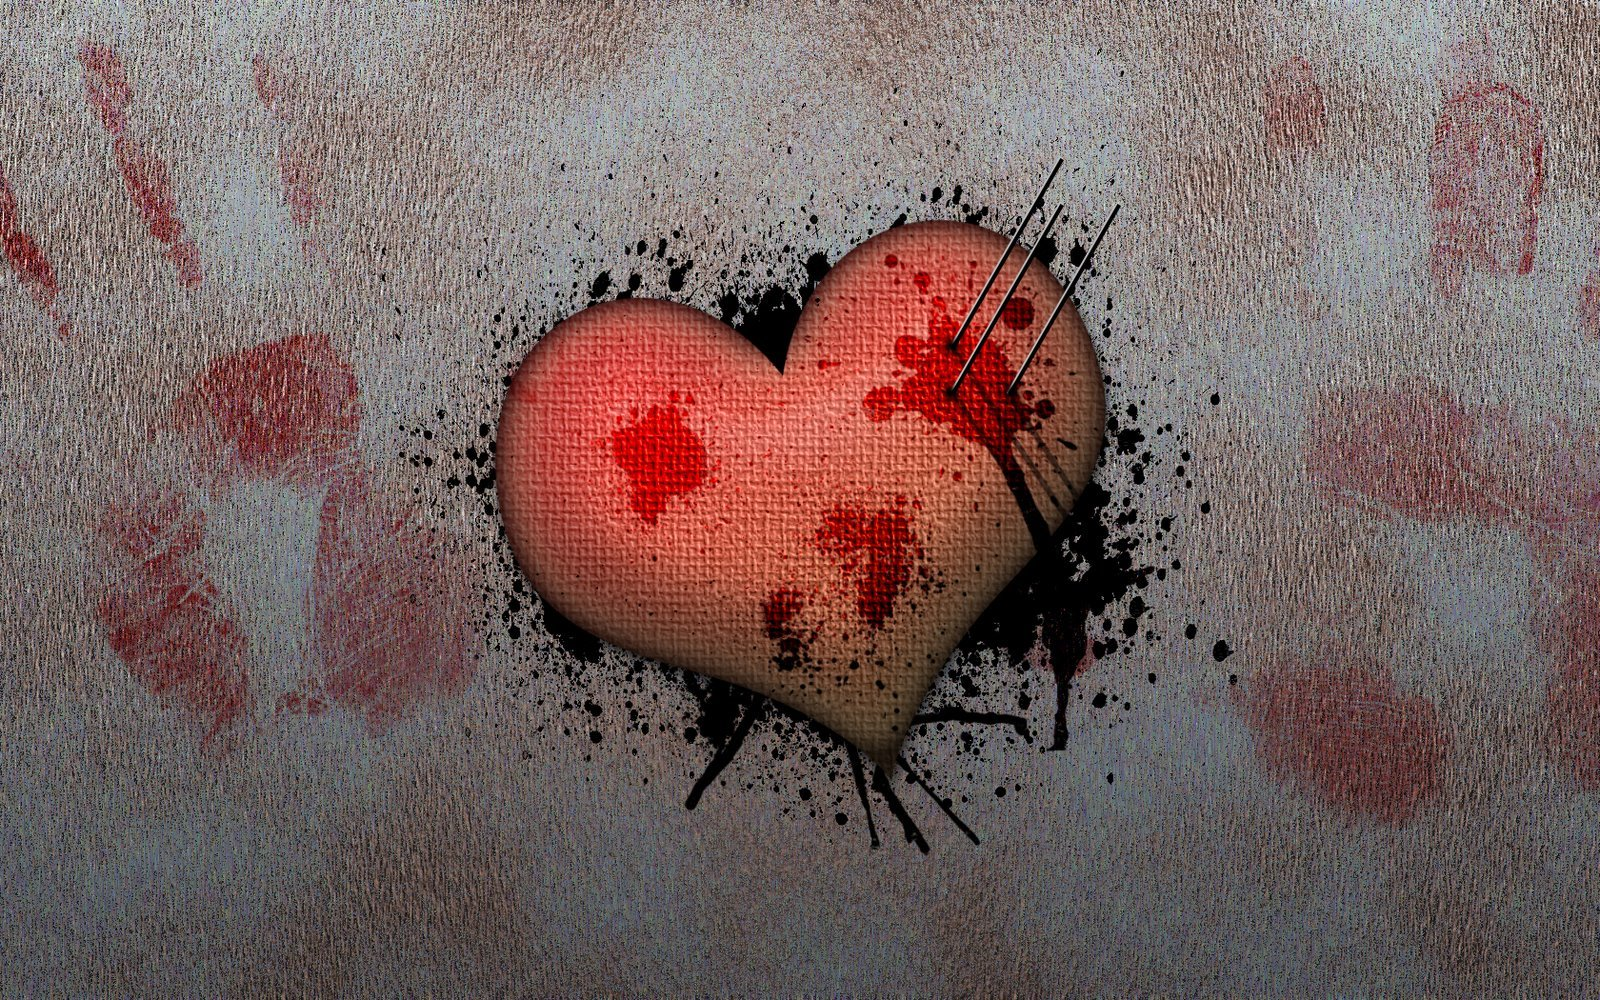 Love Wallpapers Broken Heart : Hd Free Online Heart Wallpaper Fantasy Love Wallpapers Photos Picture Pics Images : Broken Heart ...